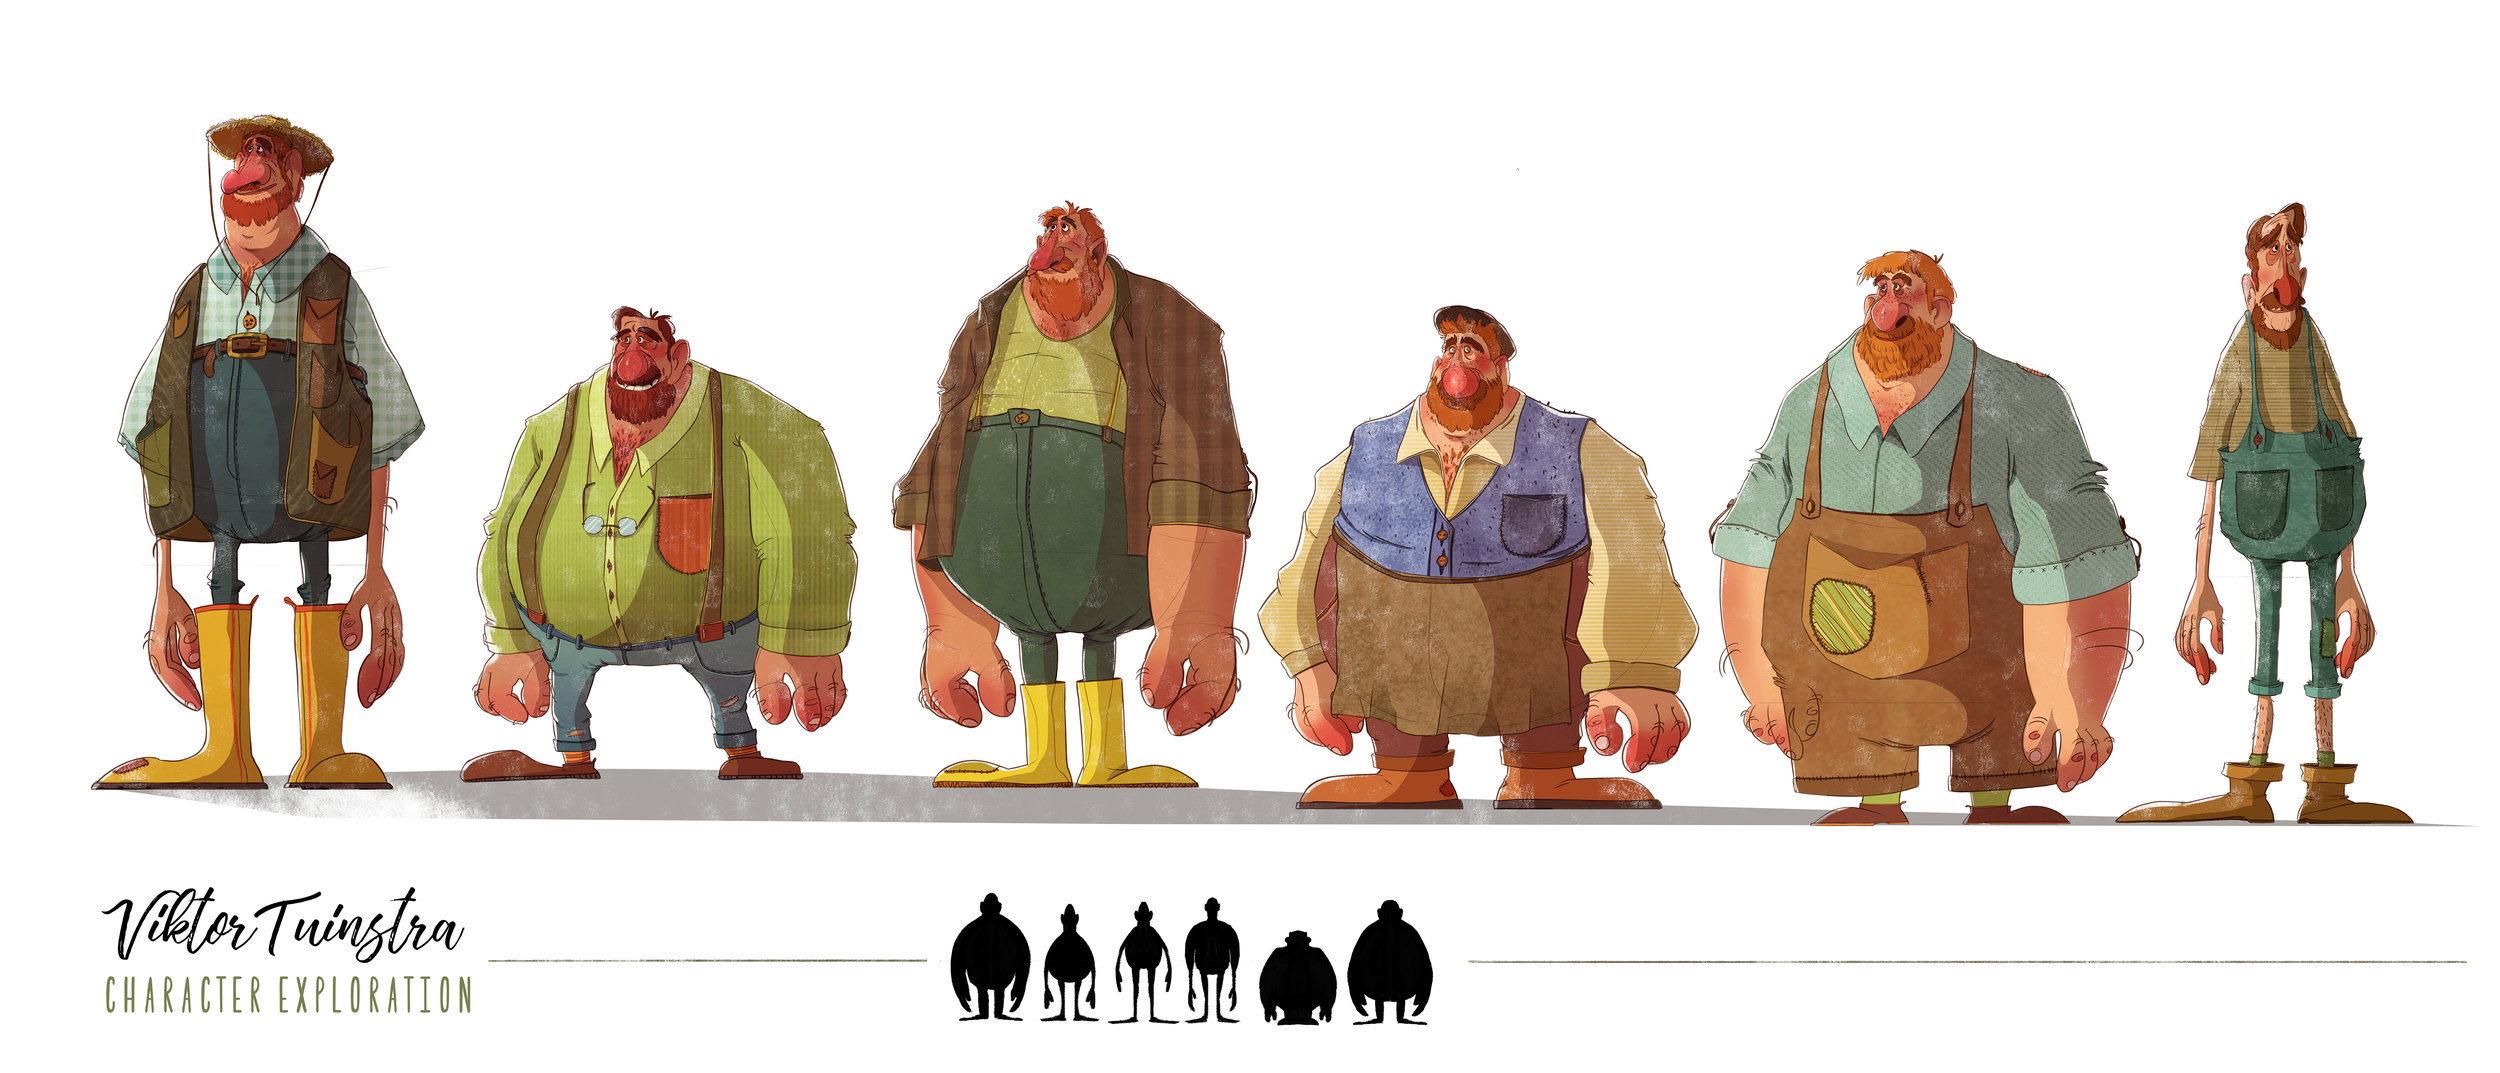 Characters_first round_002.jpg